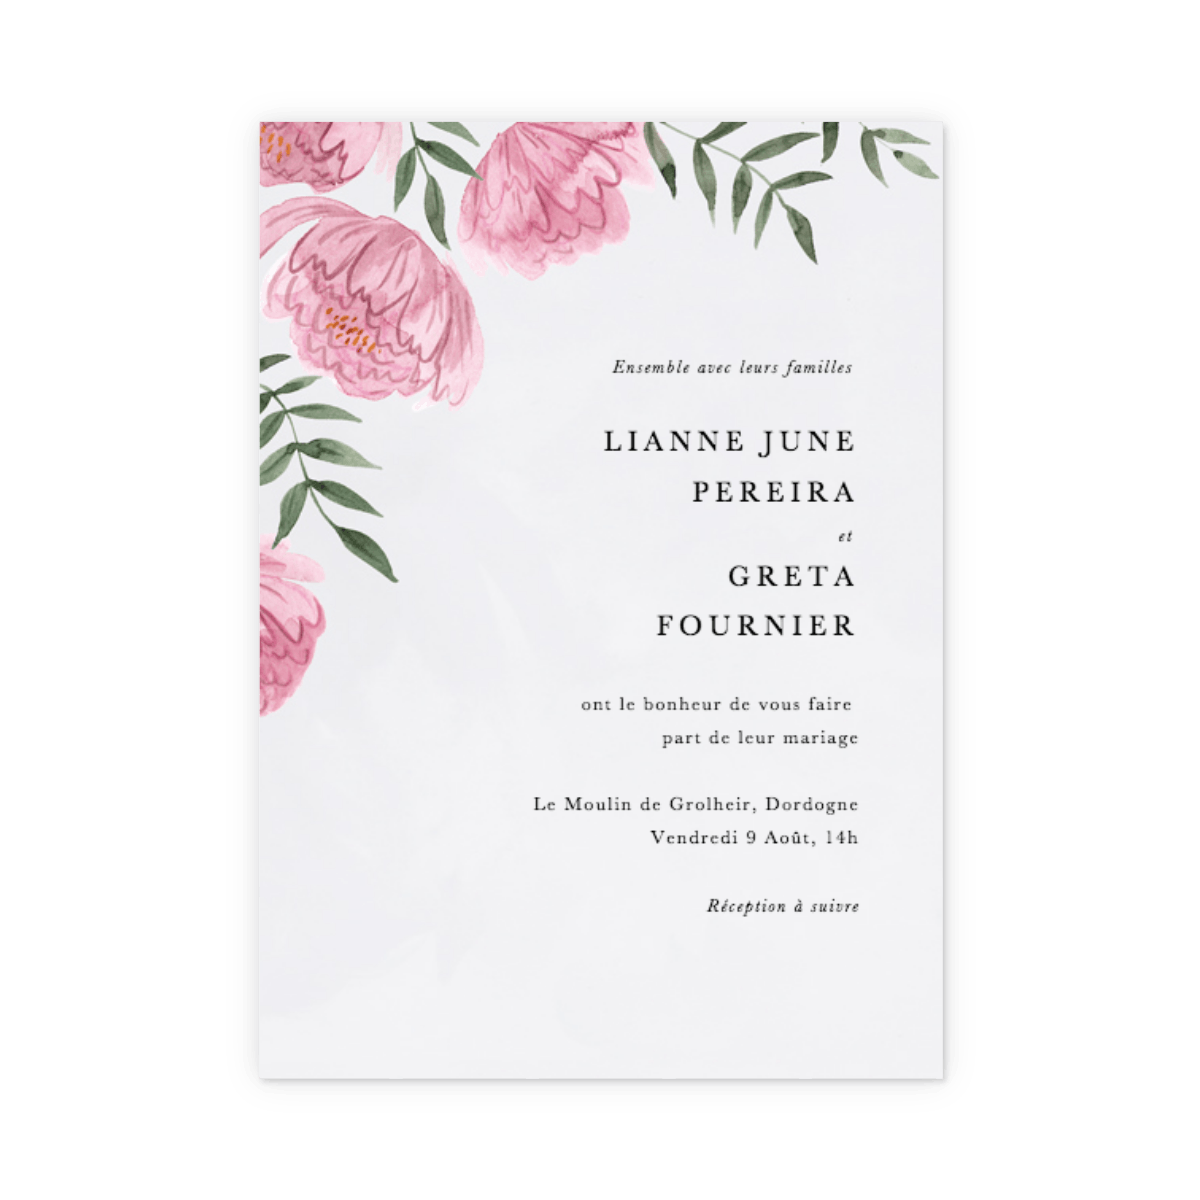 Https%3a%2f%2fwww.papier.com%2fproduct image%2f65527%2f4%2fdusky peonies 14859 avant 1553681414.png?ixlib=rb 1.1